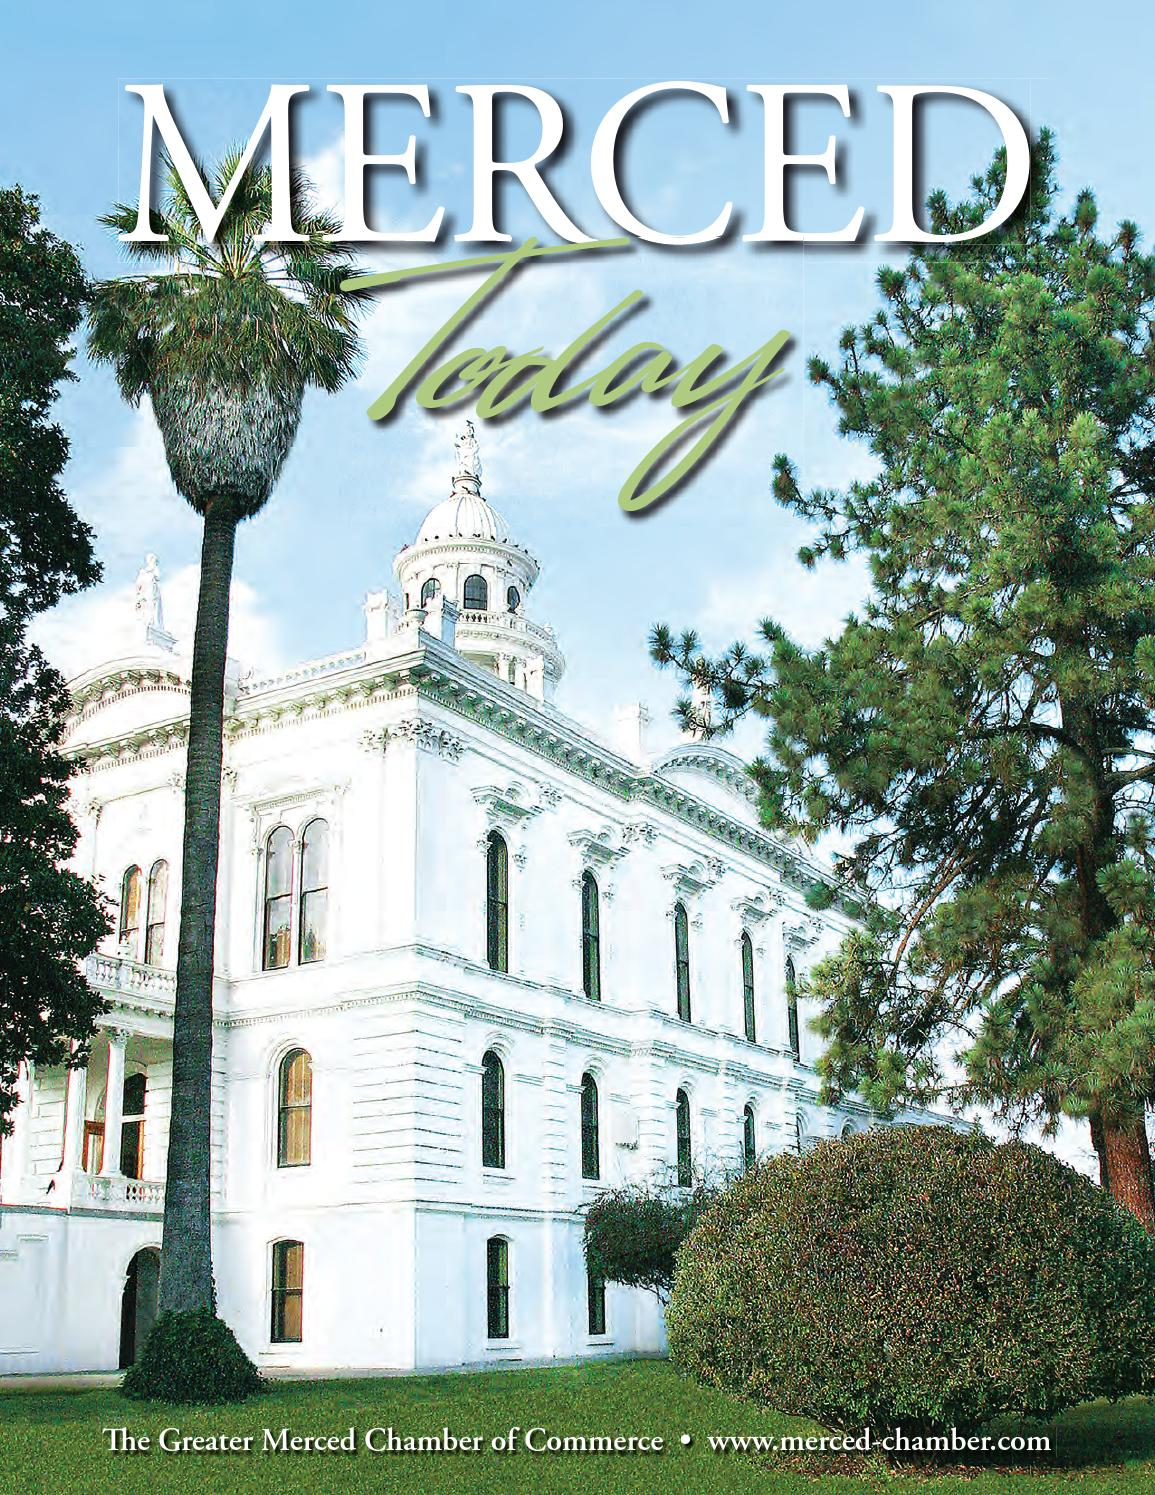 Merced ca today community guide by town square publications llc merced ca today community guide by town square publications llc issuu aiddatafo Images